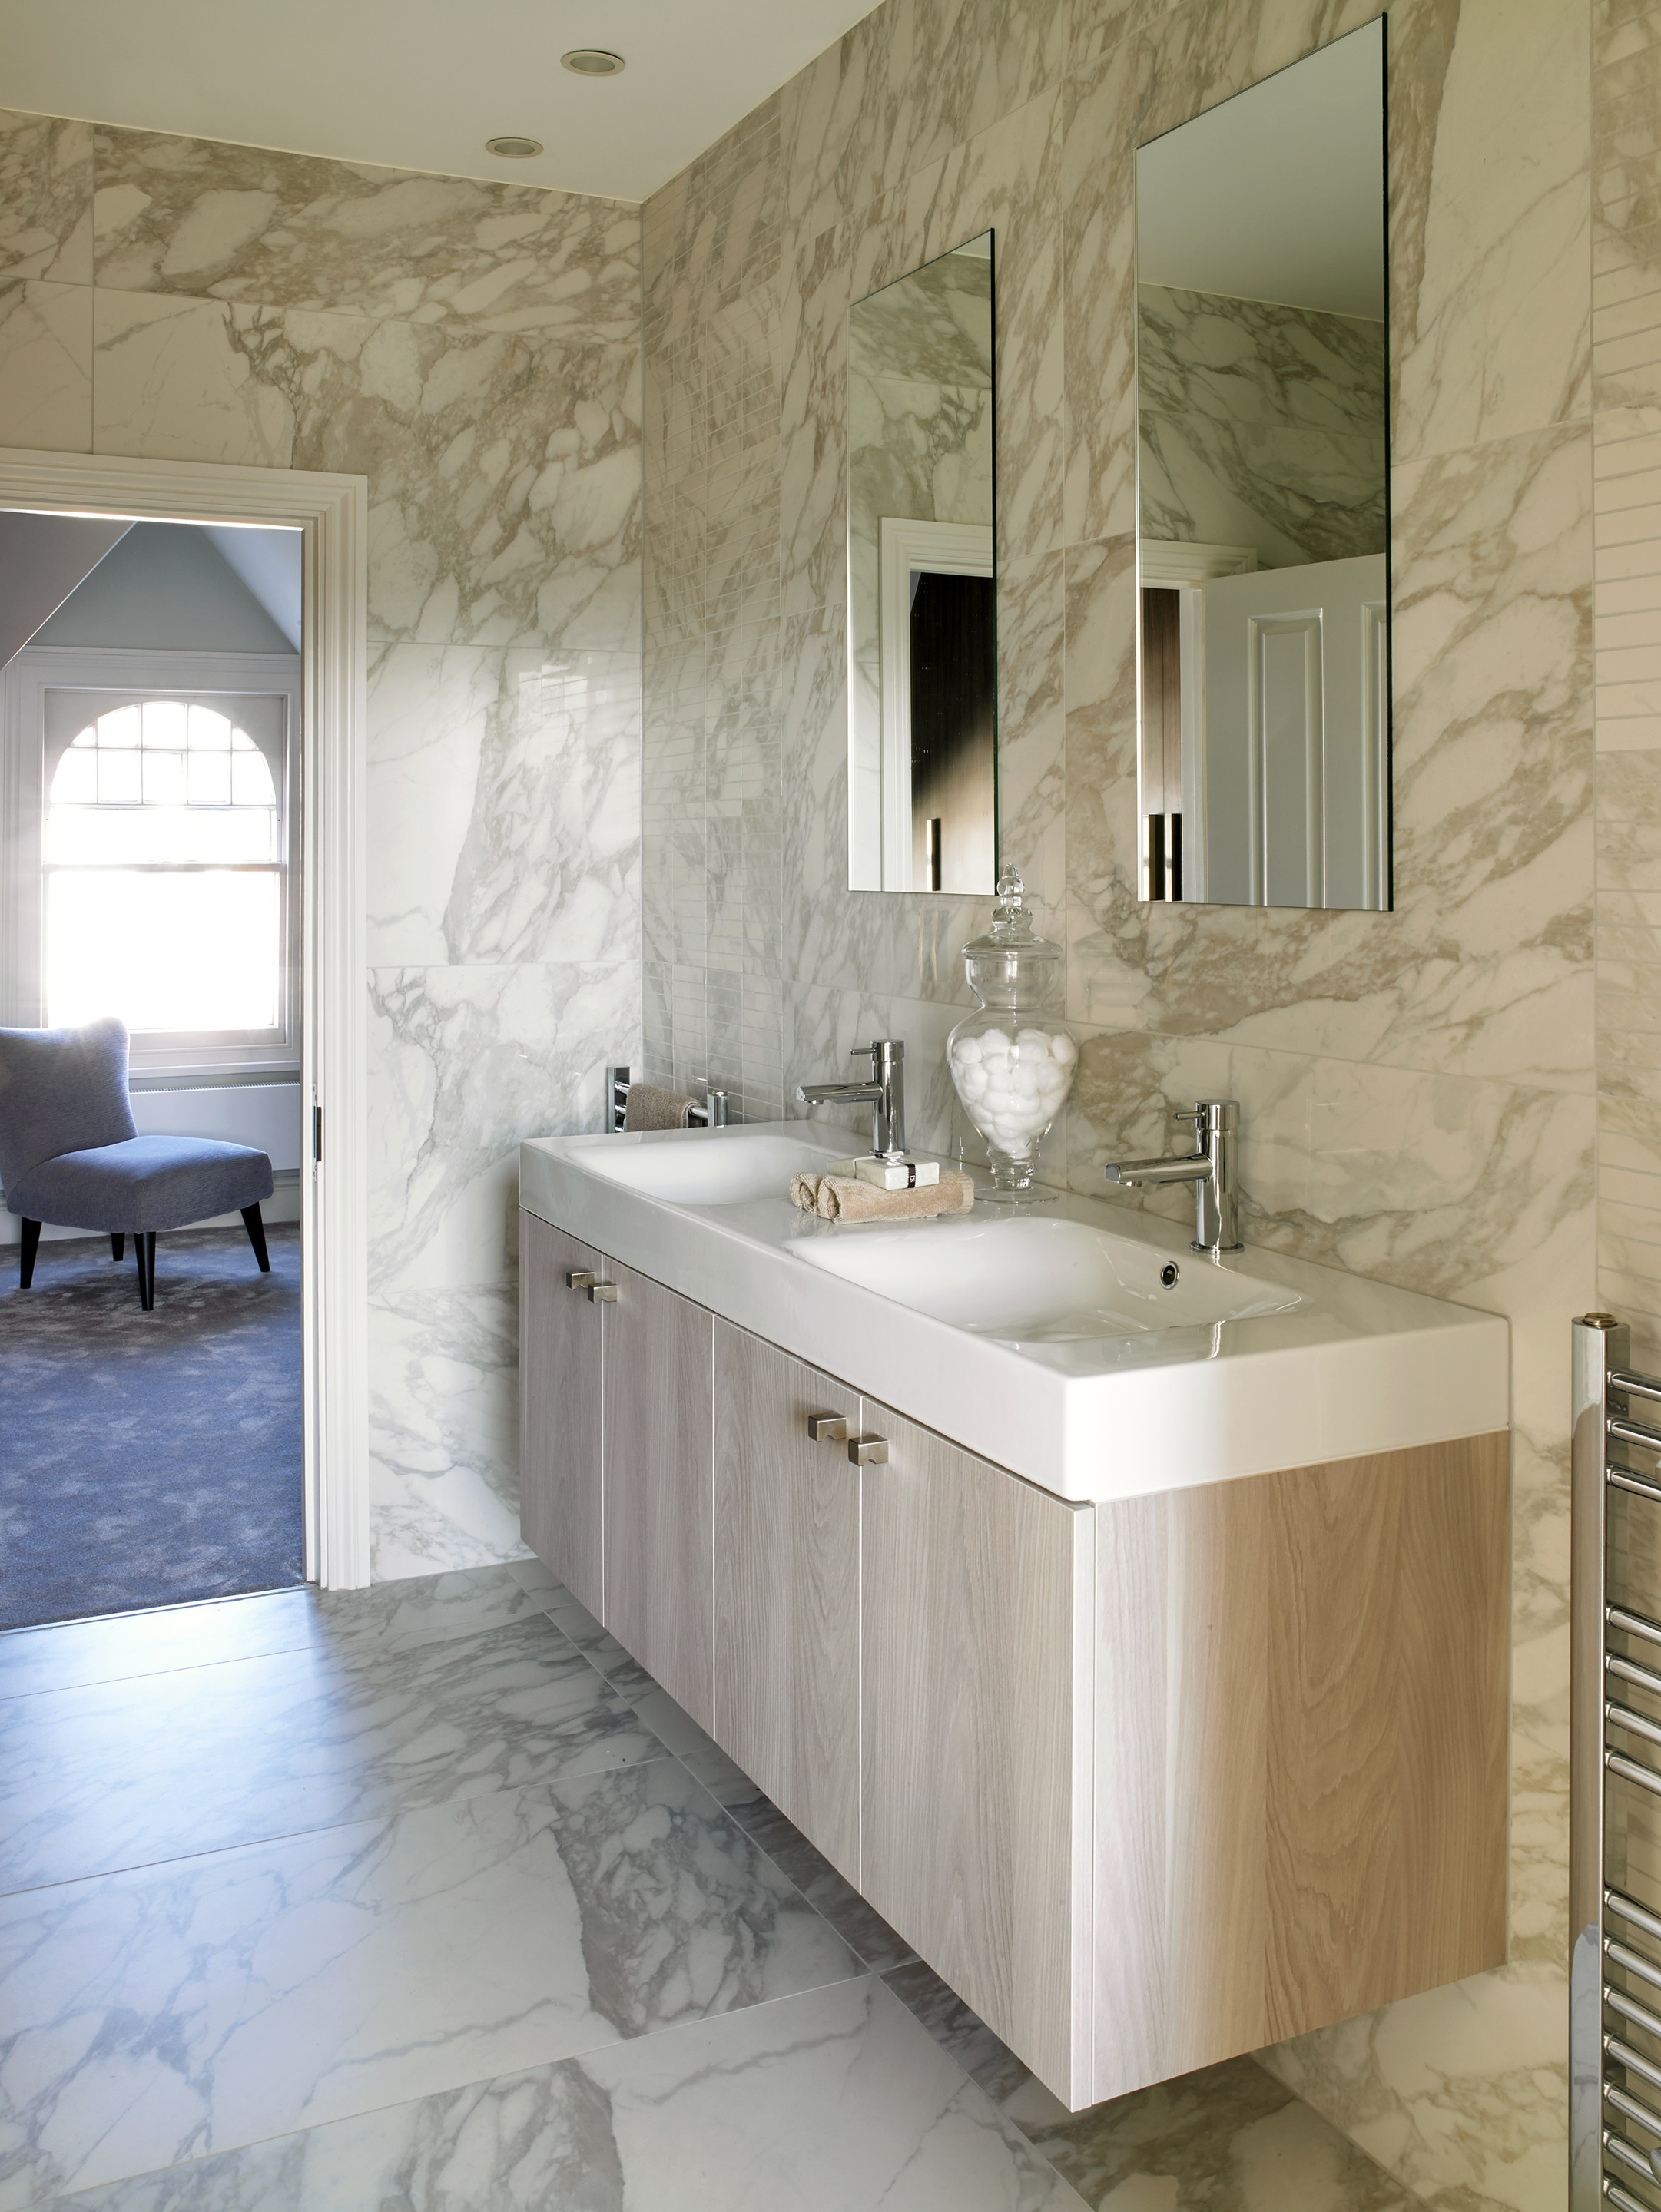 En suite in luxury marble